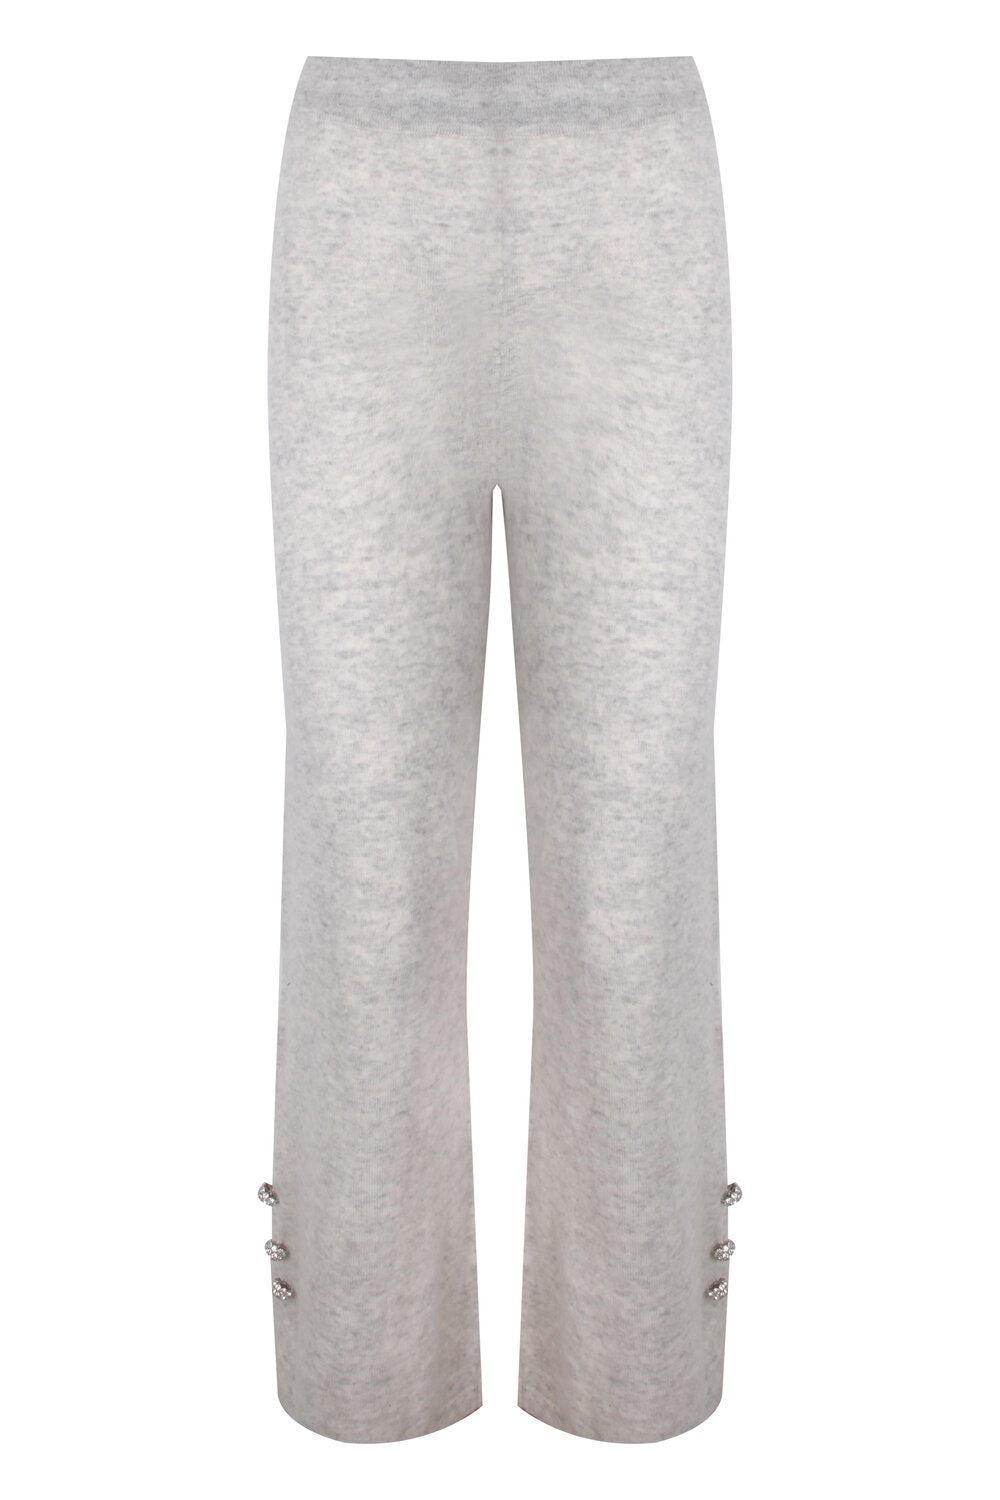 Grey Button Embellished Knit Pants